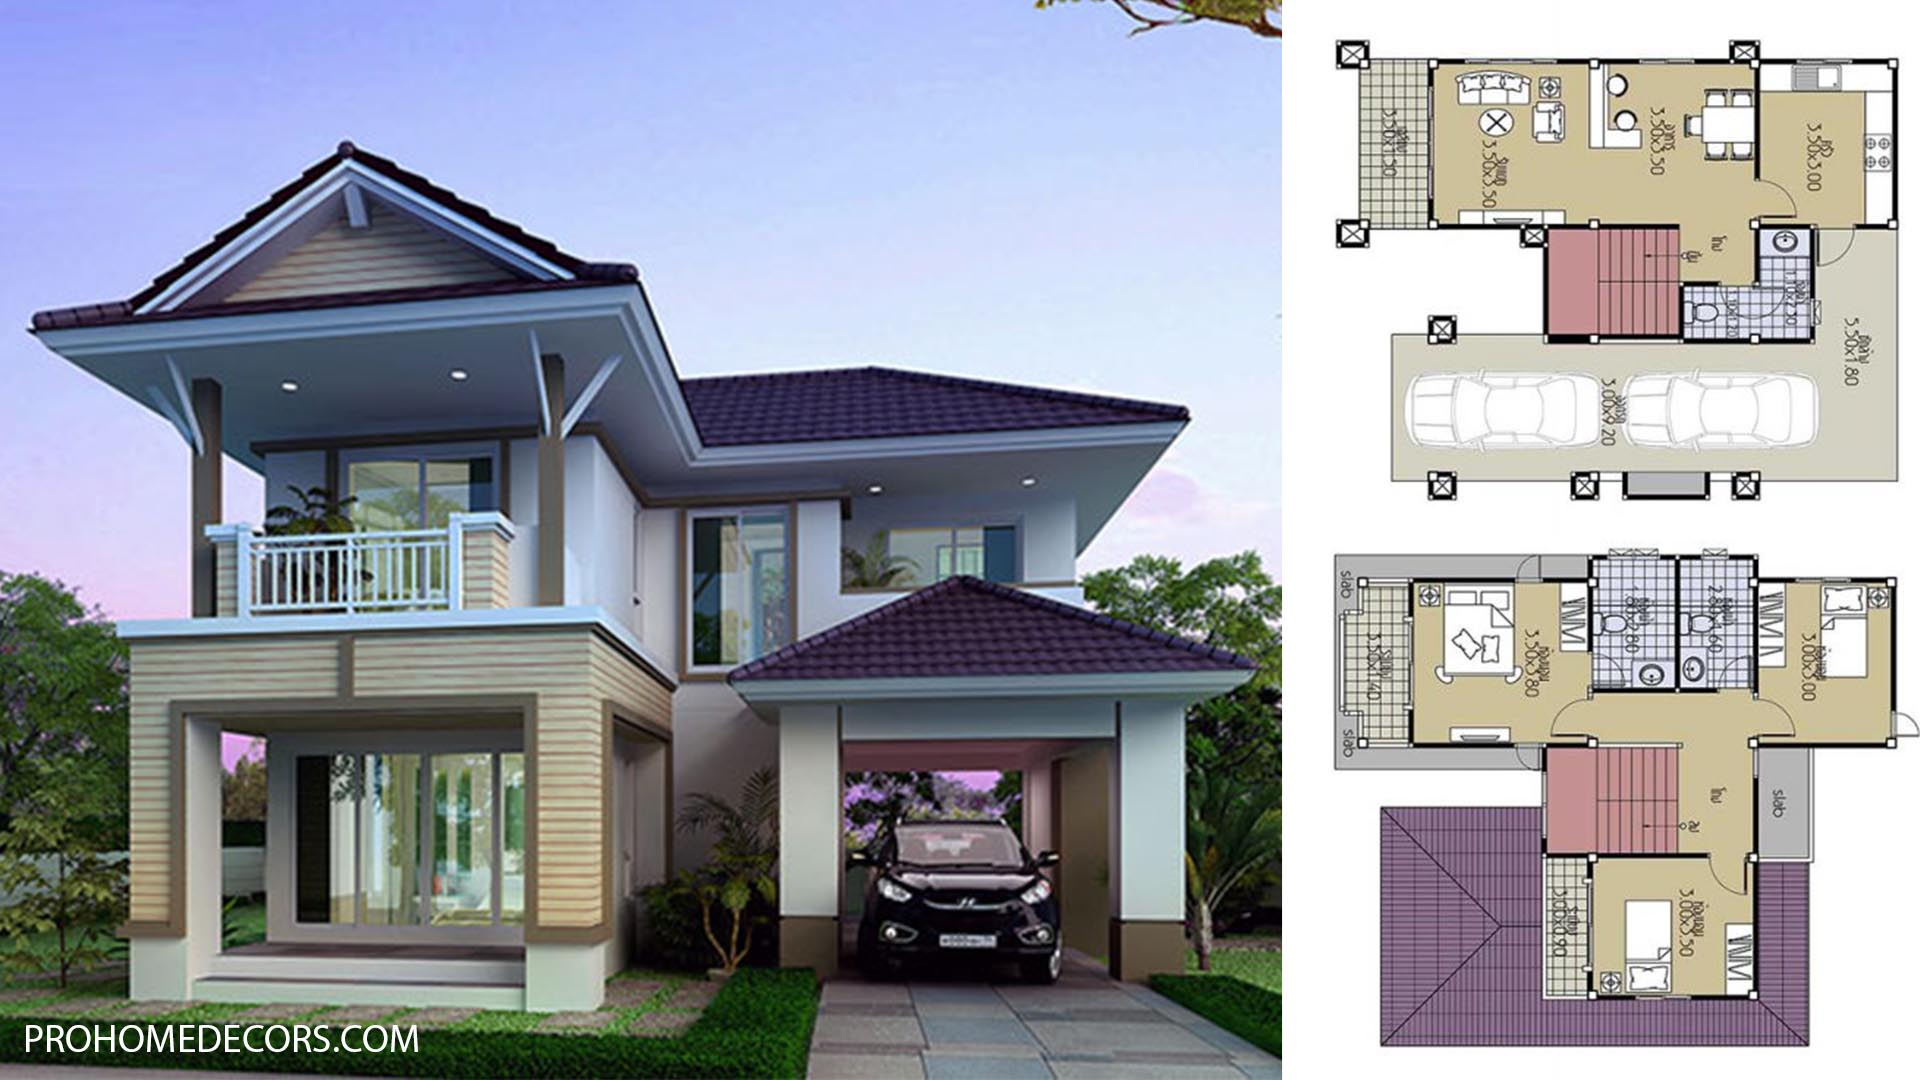 House Plans 9×11.5 with 3 Beds